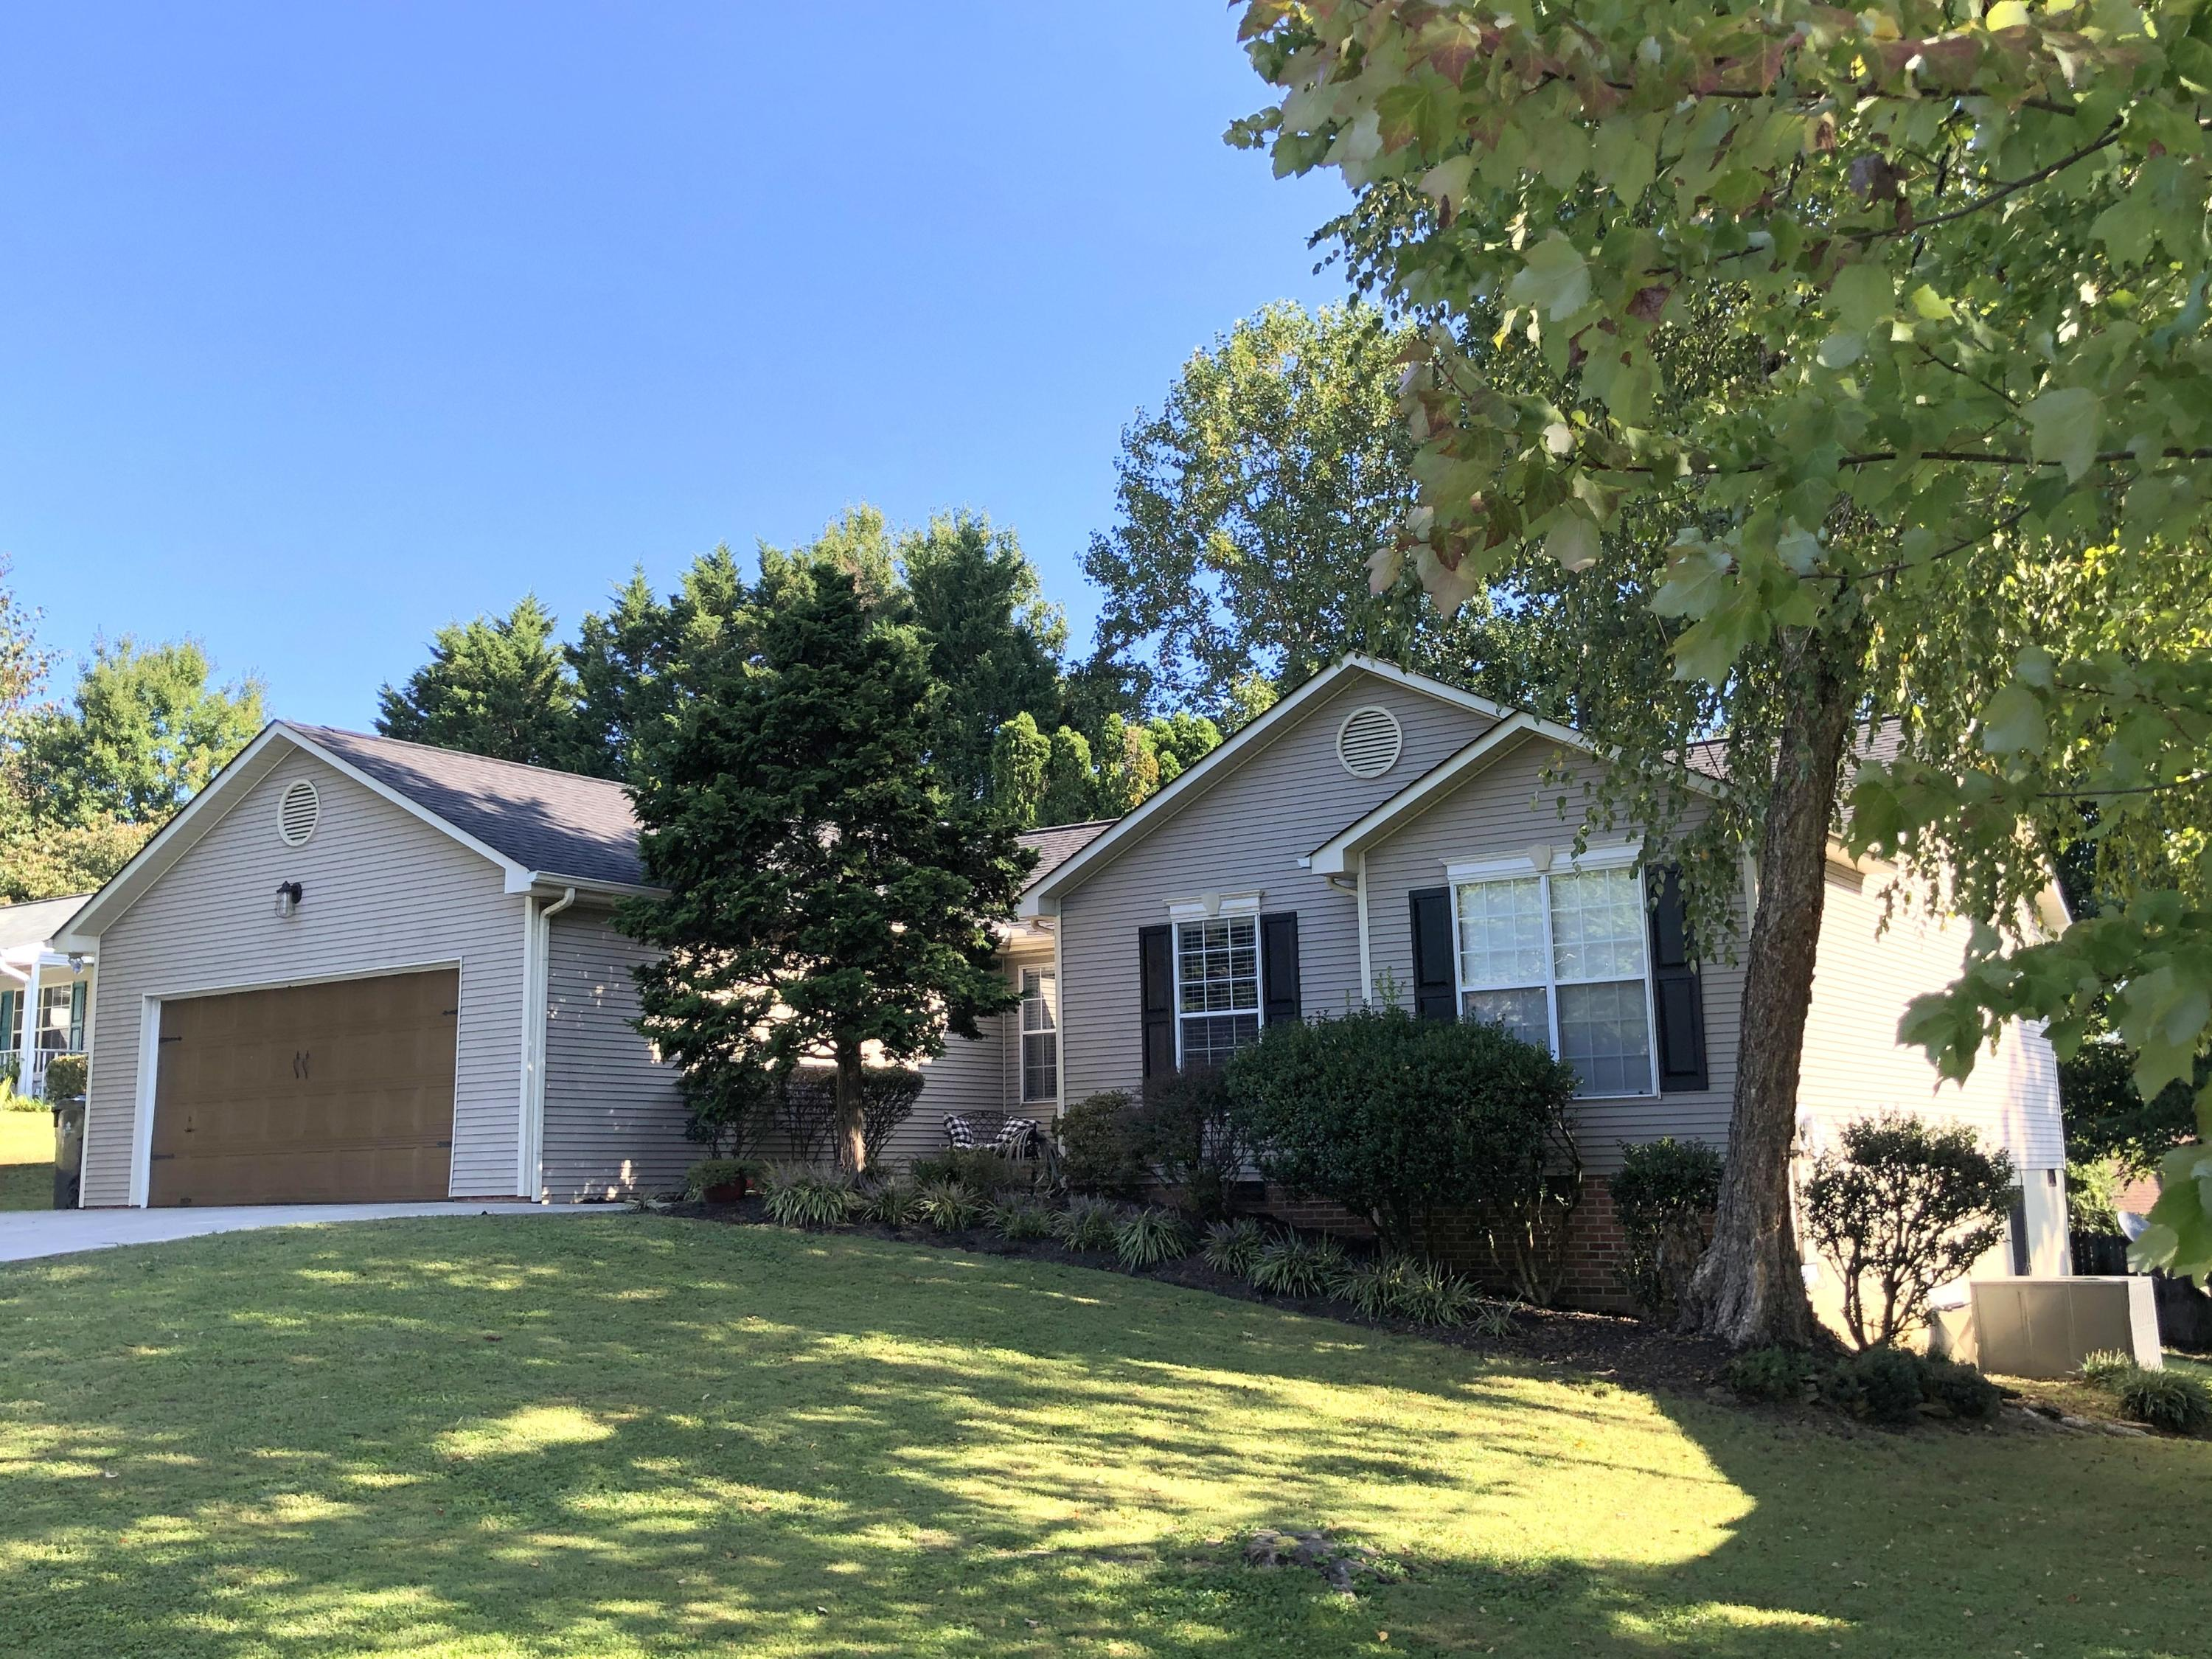 5947 Tennyson, Knoxville, Tennessee, United States 37901, 3 Bedrooms Bedrooms, ,2 BathroomsBathrooms,Single Family,For Sale,Tennyson,1130440